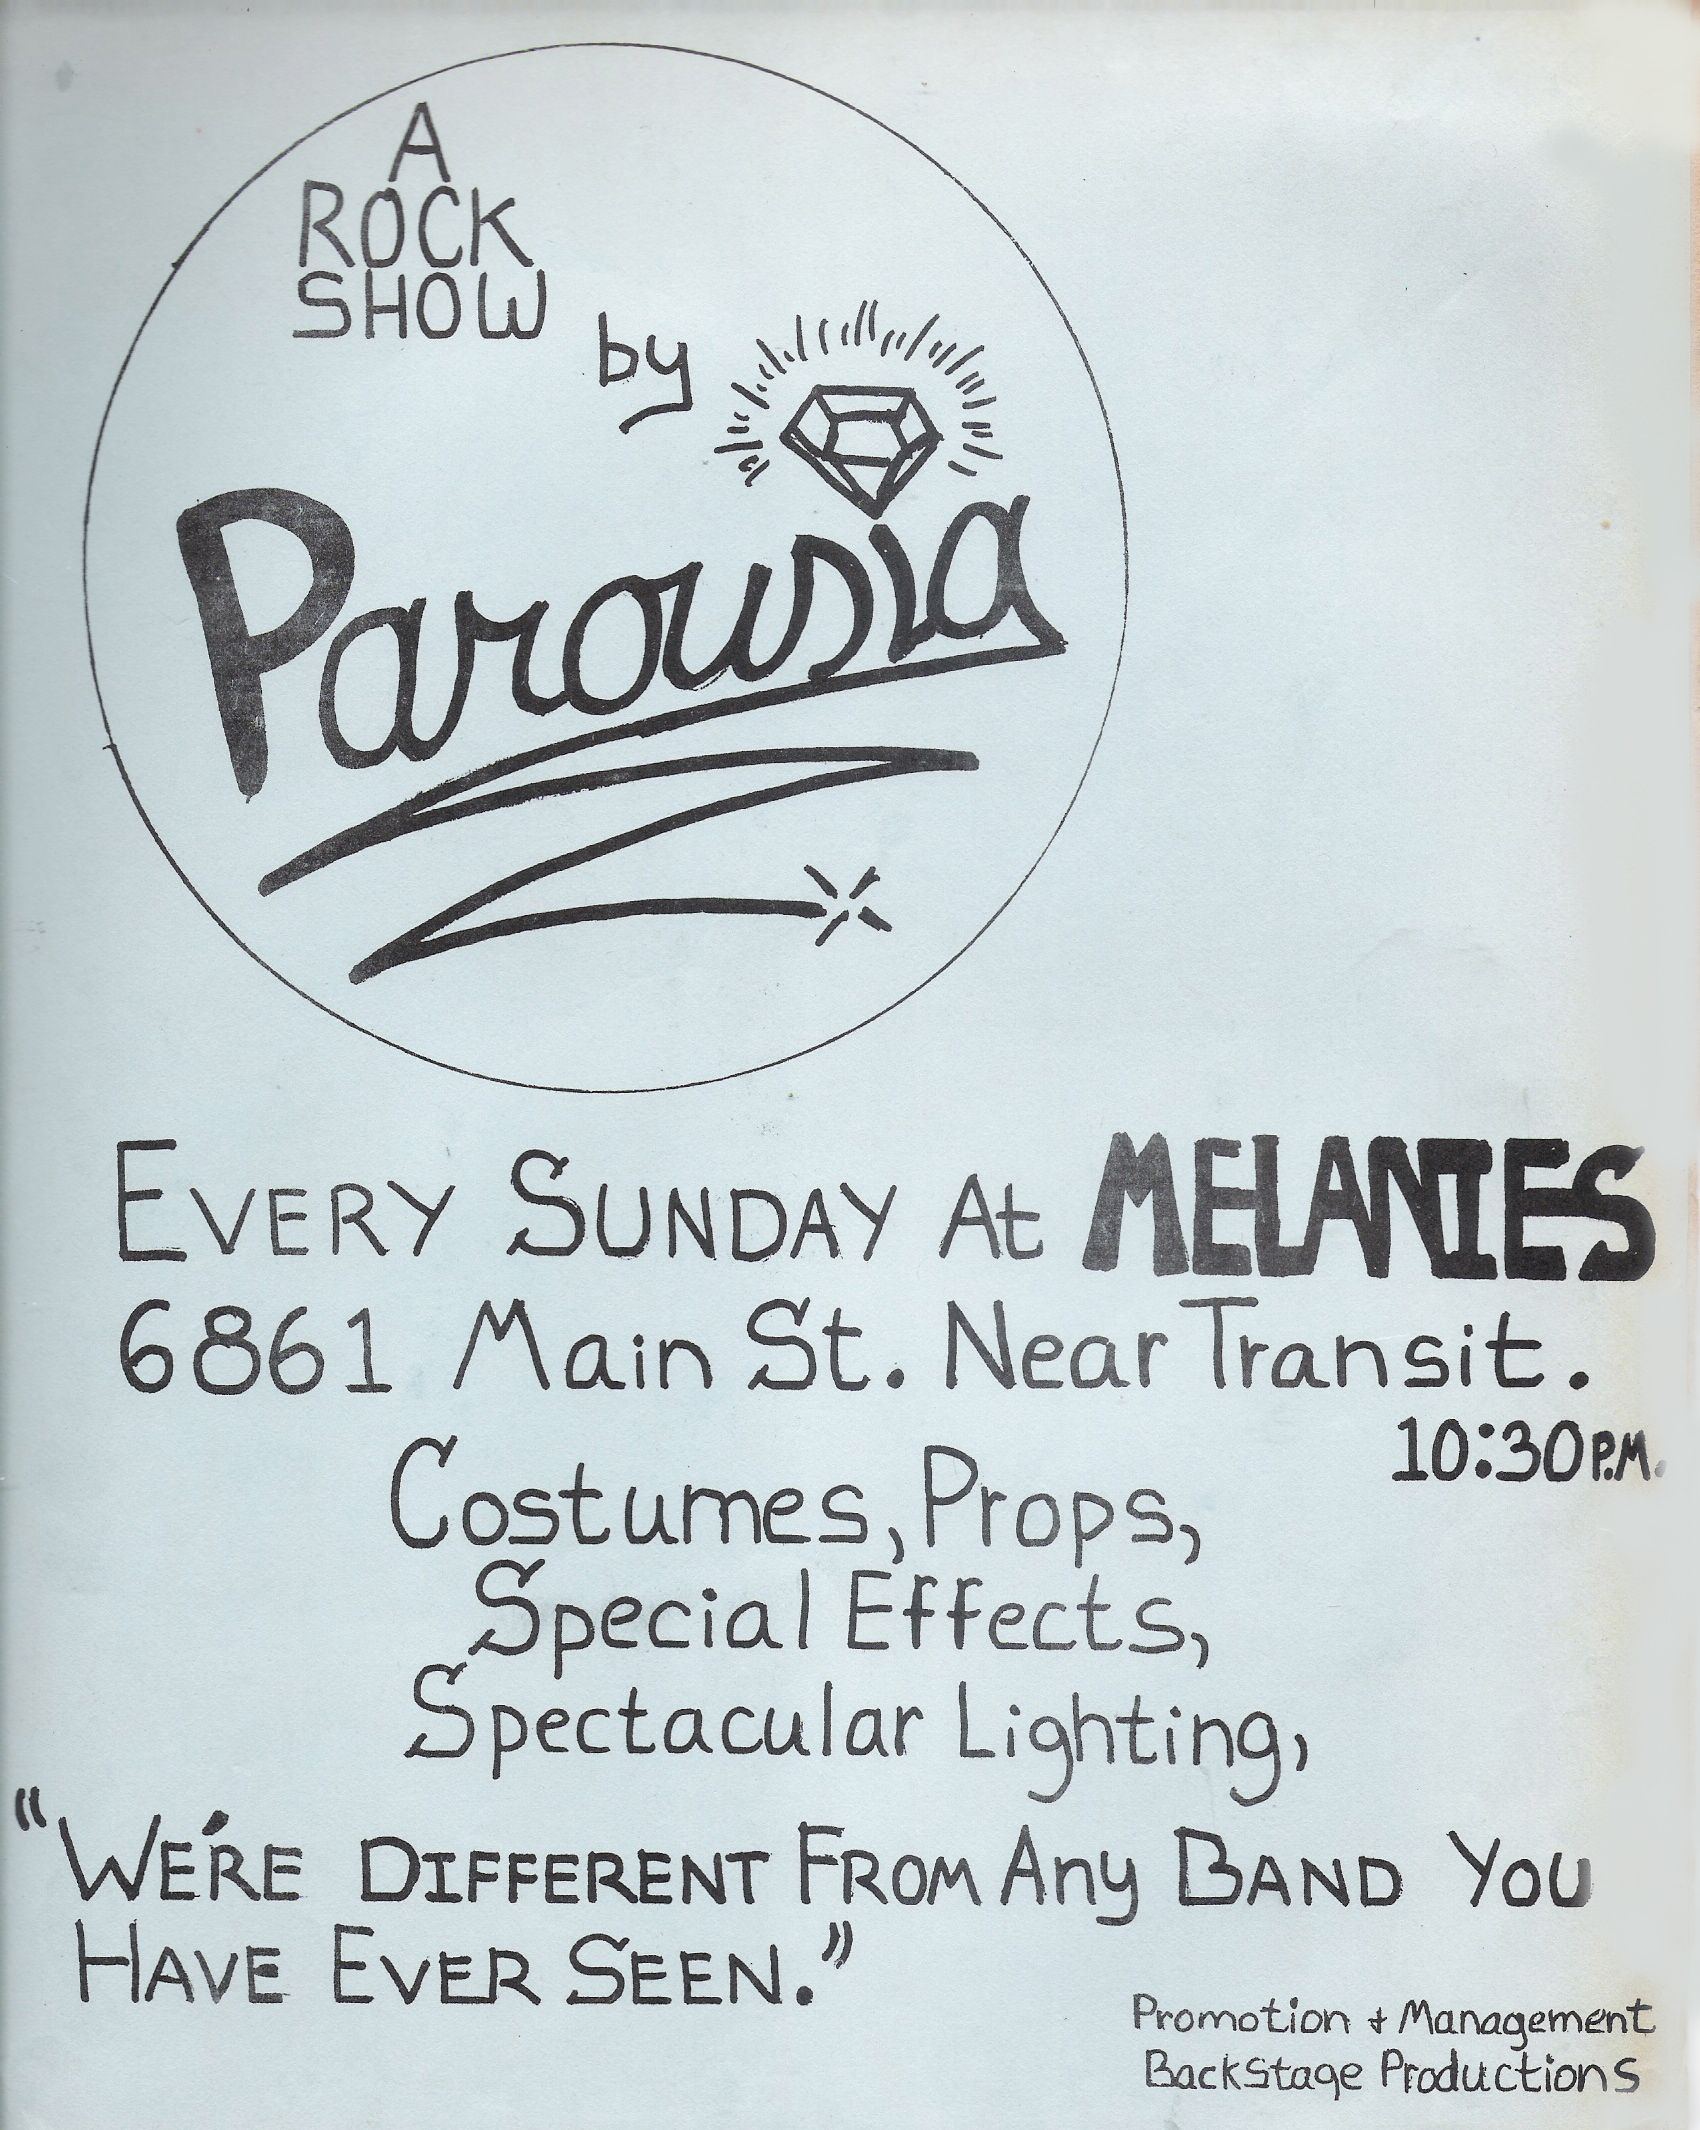 Back Stage Productions presents: PAROUSIA at Melanie's. Sunday, October 12, 1980.